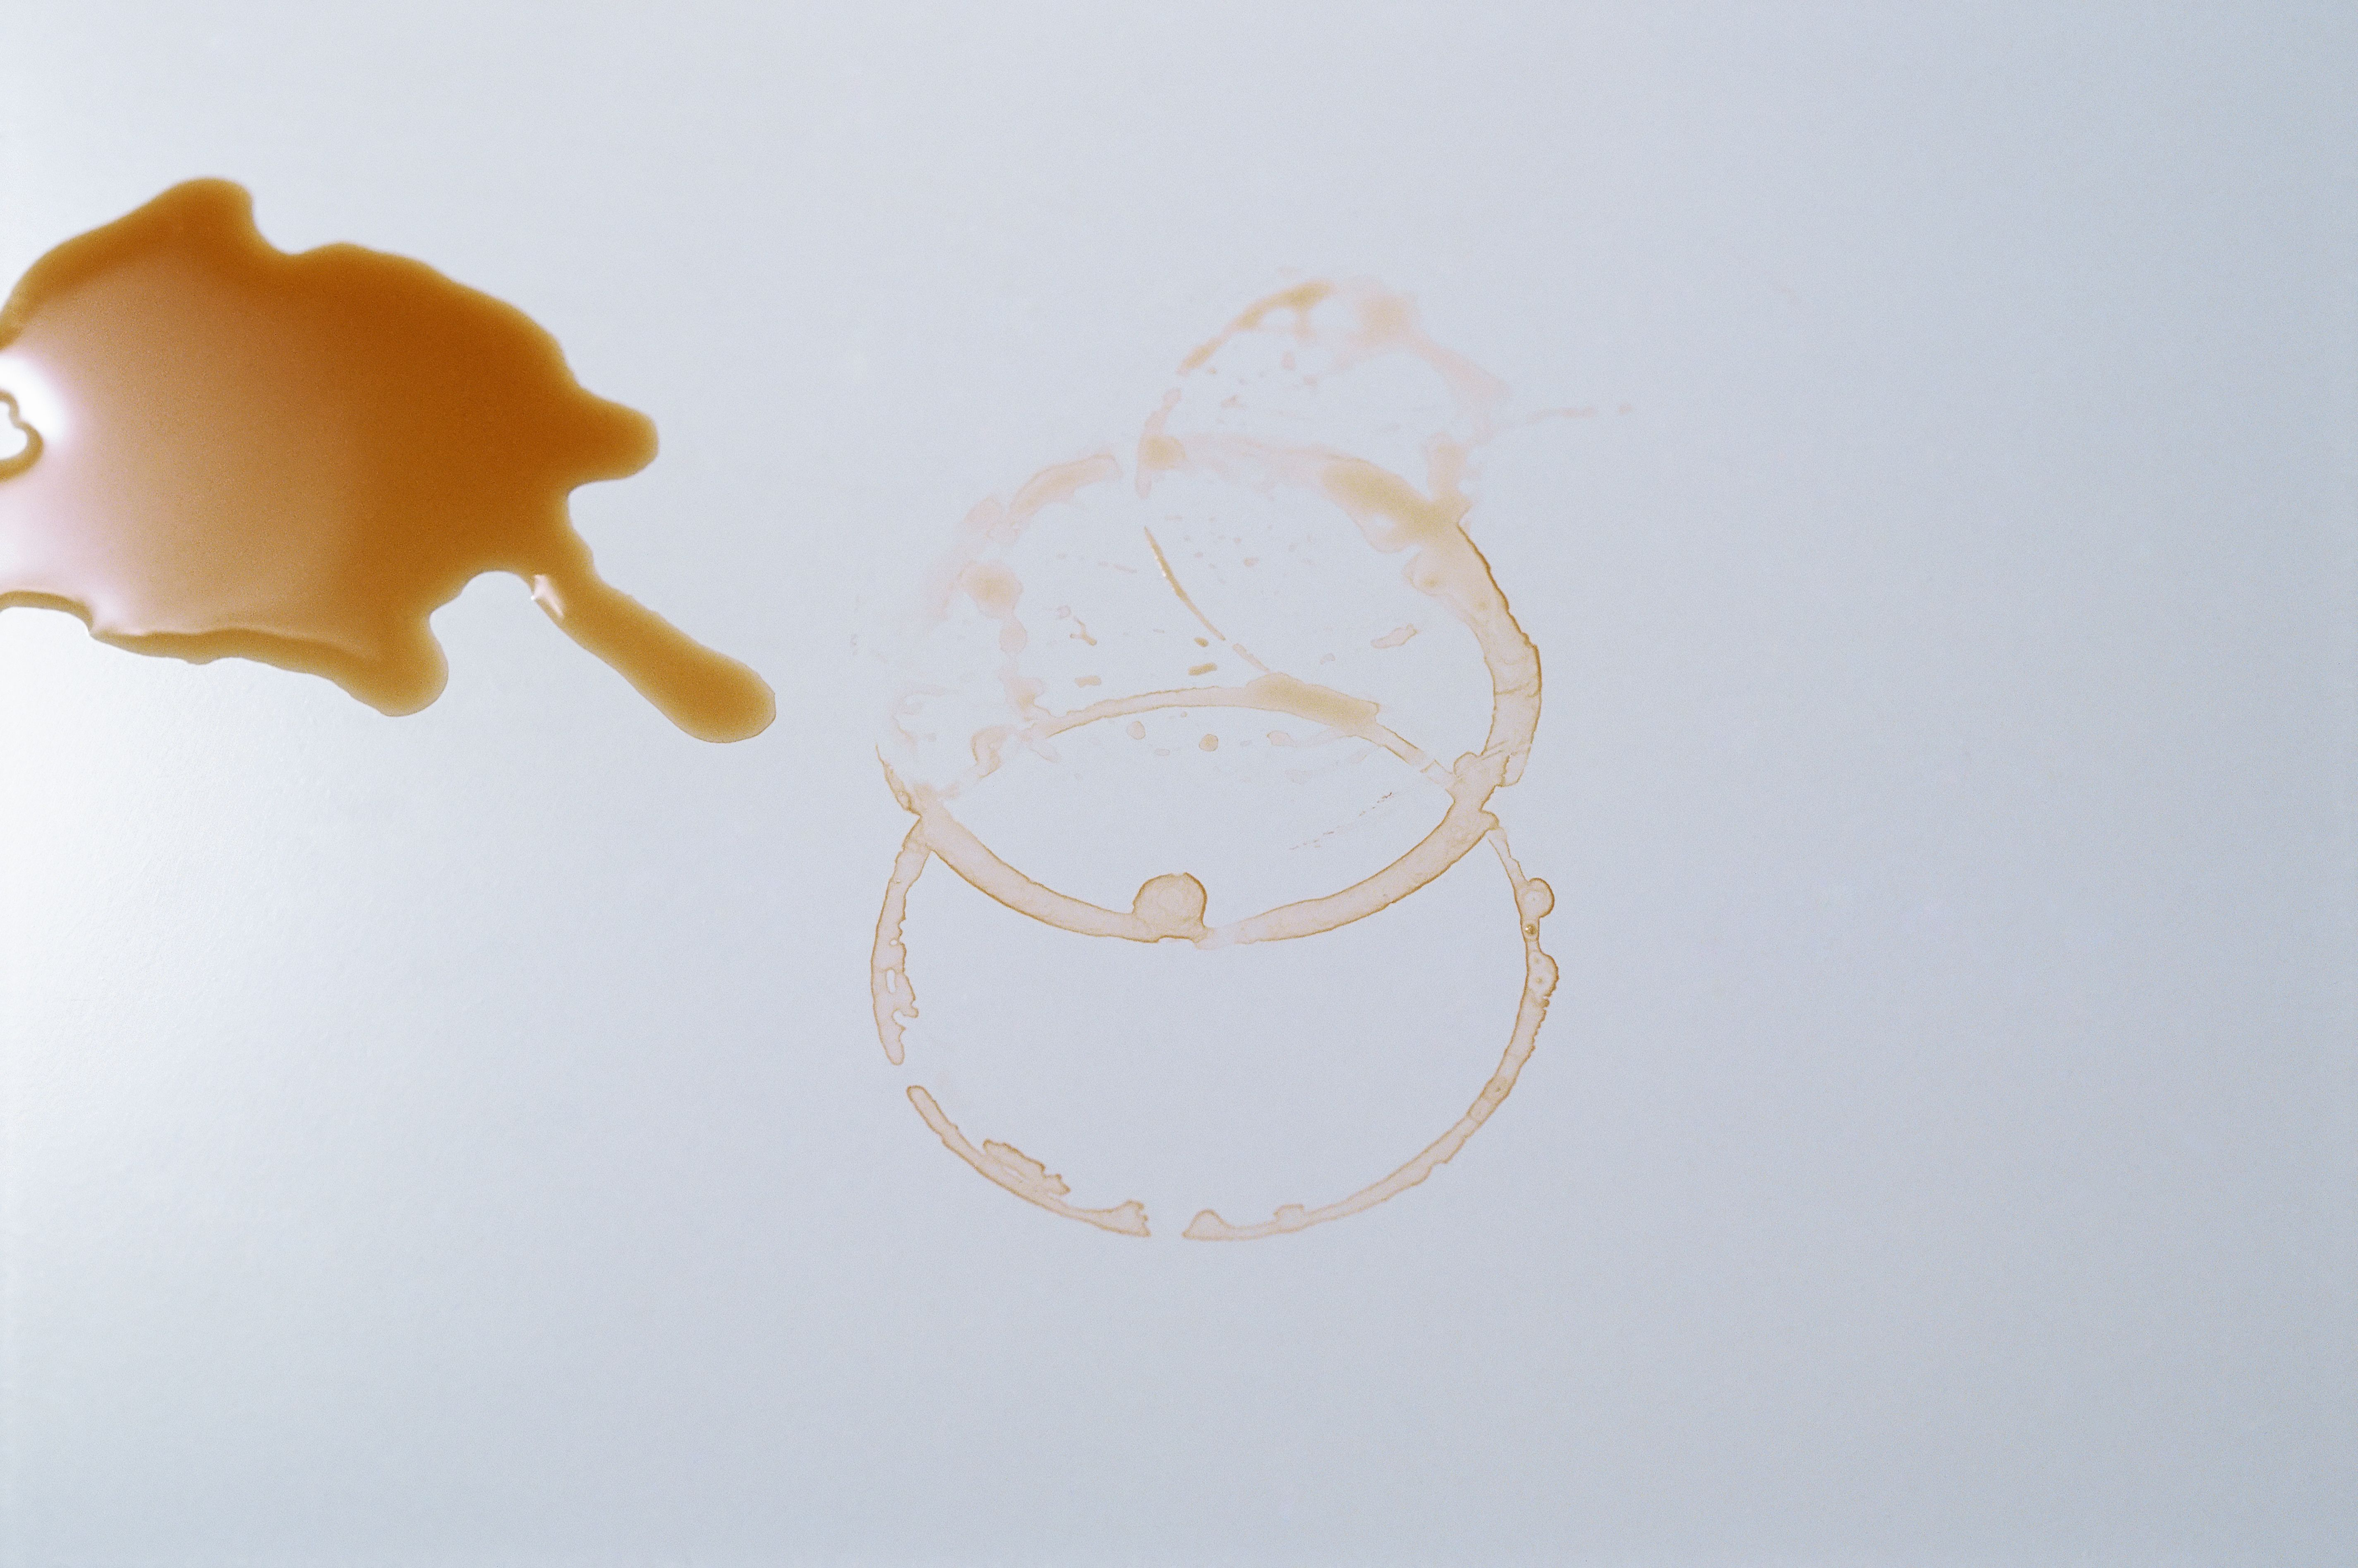 How To Get Rid Of Tea Stains